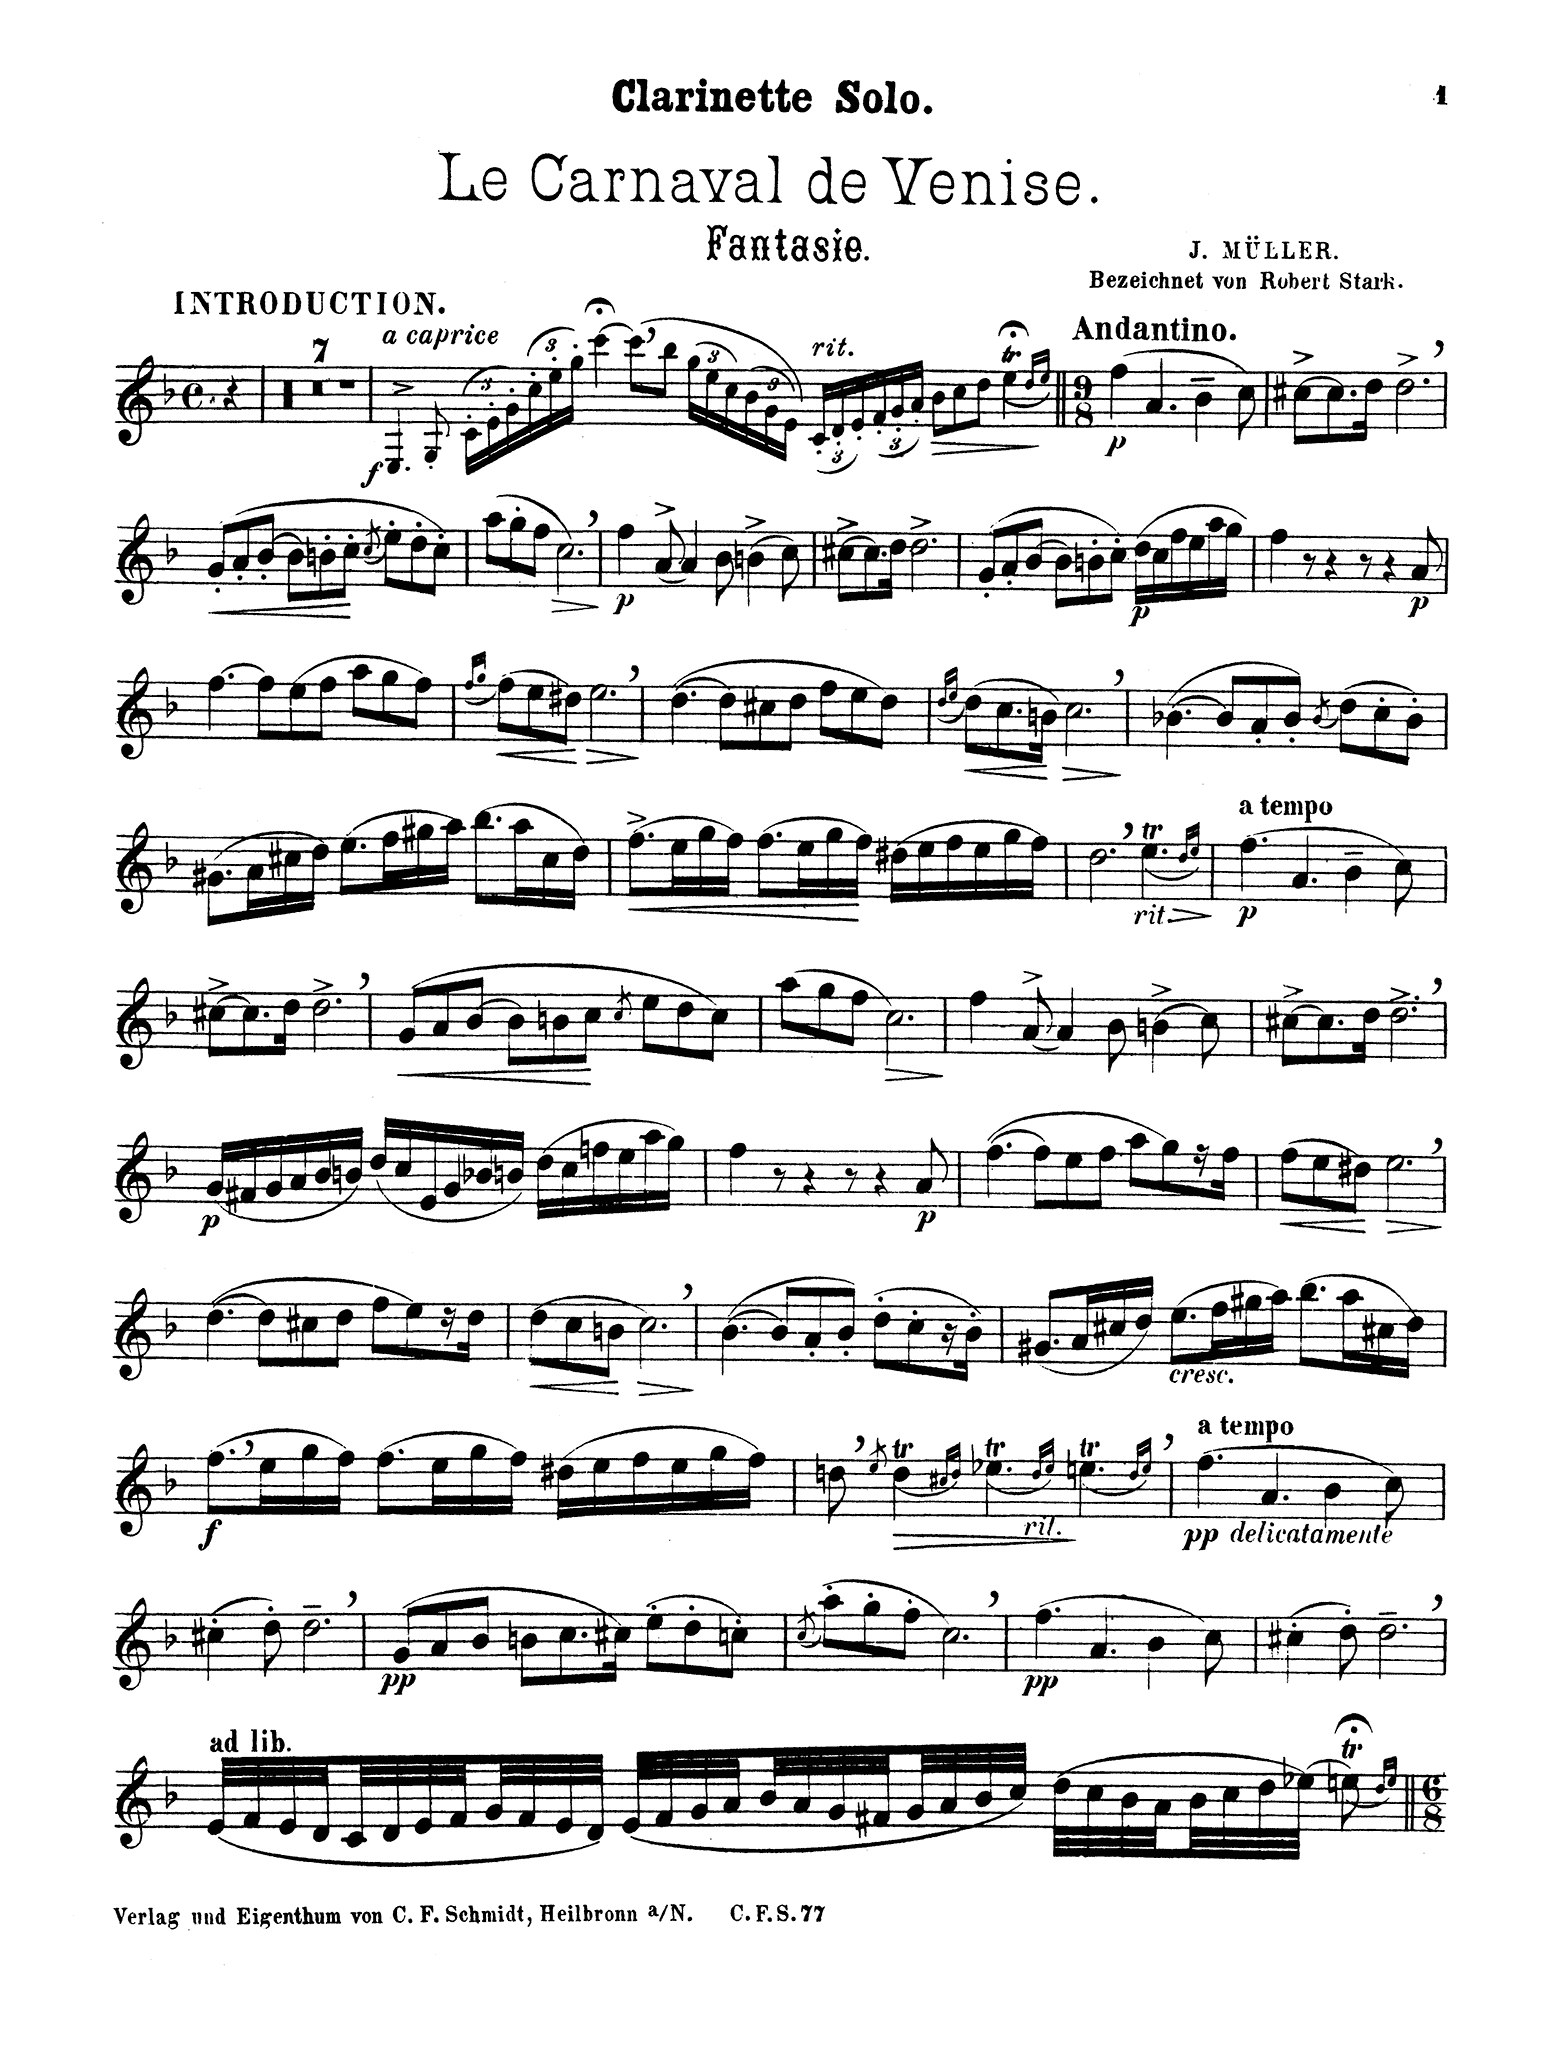 Carnival of Venice Fantasie Clarinet part